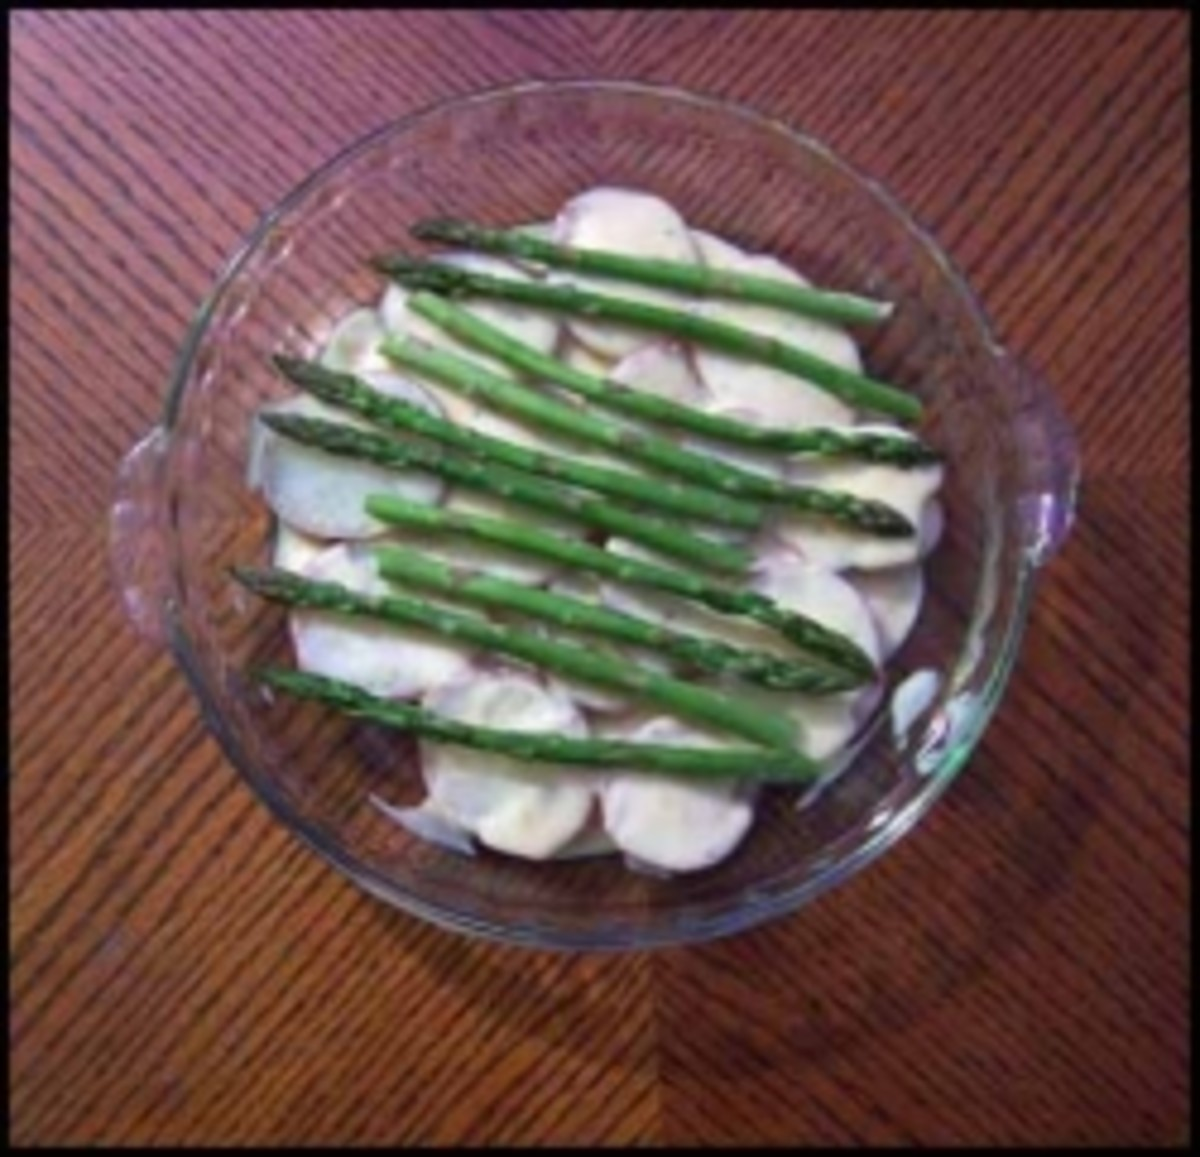 Tender asparagus atop the cheese sauce and potatoes